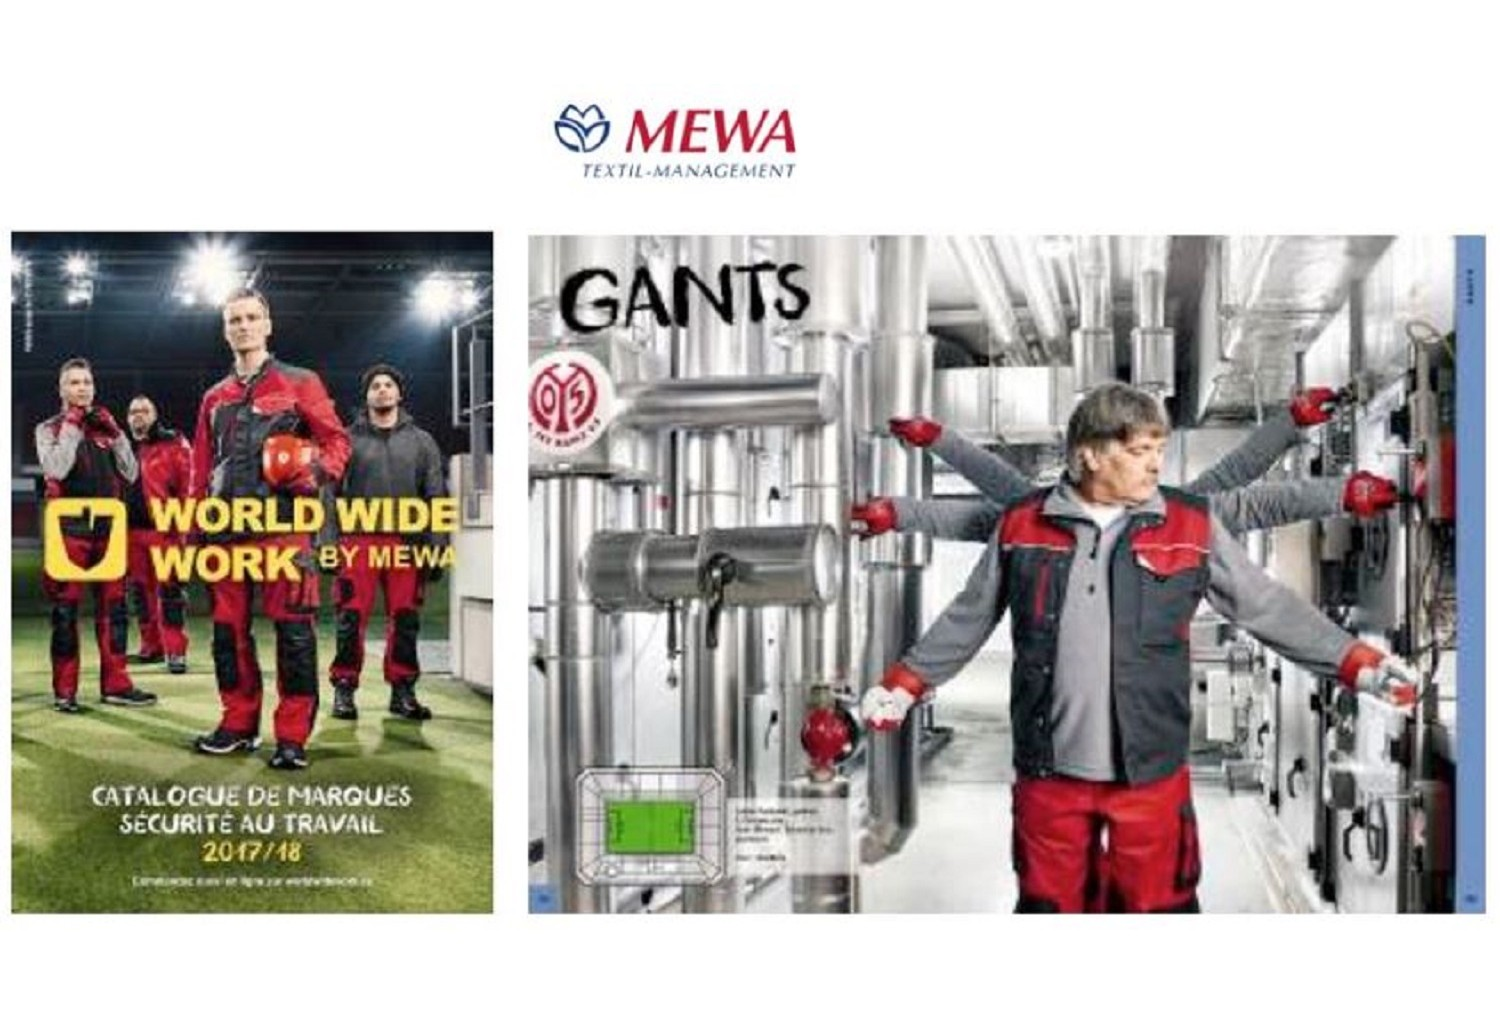 Le nouveau catalogue World Wide Work de Mewa est disponible